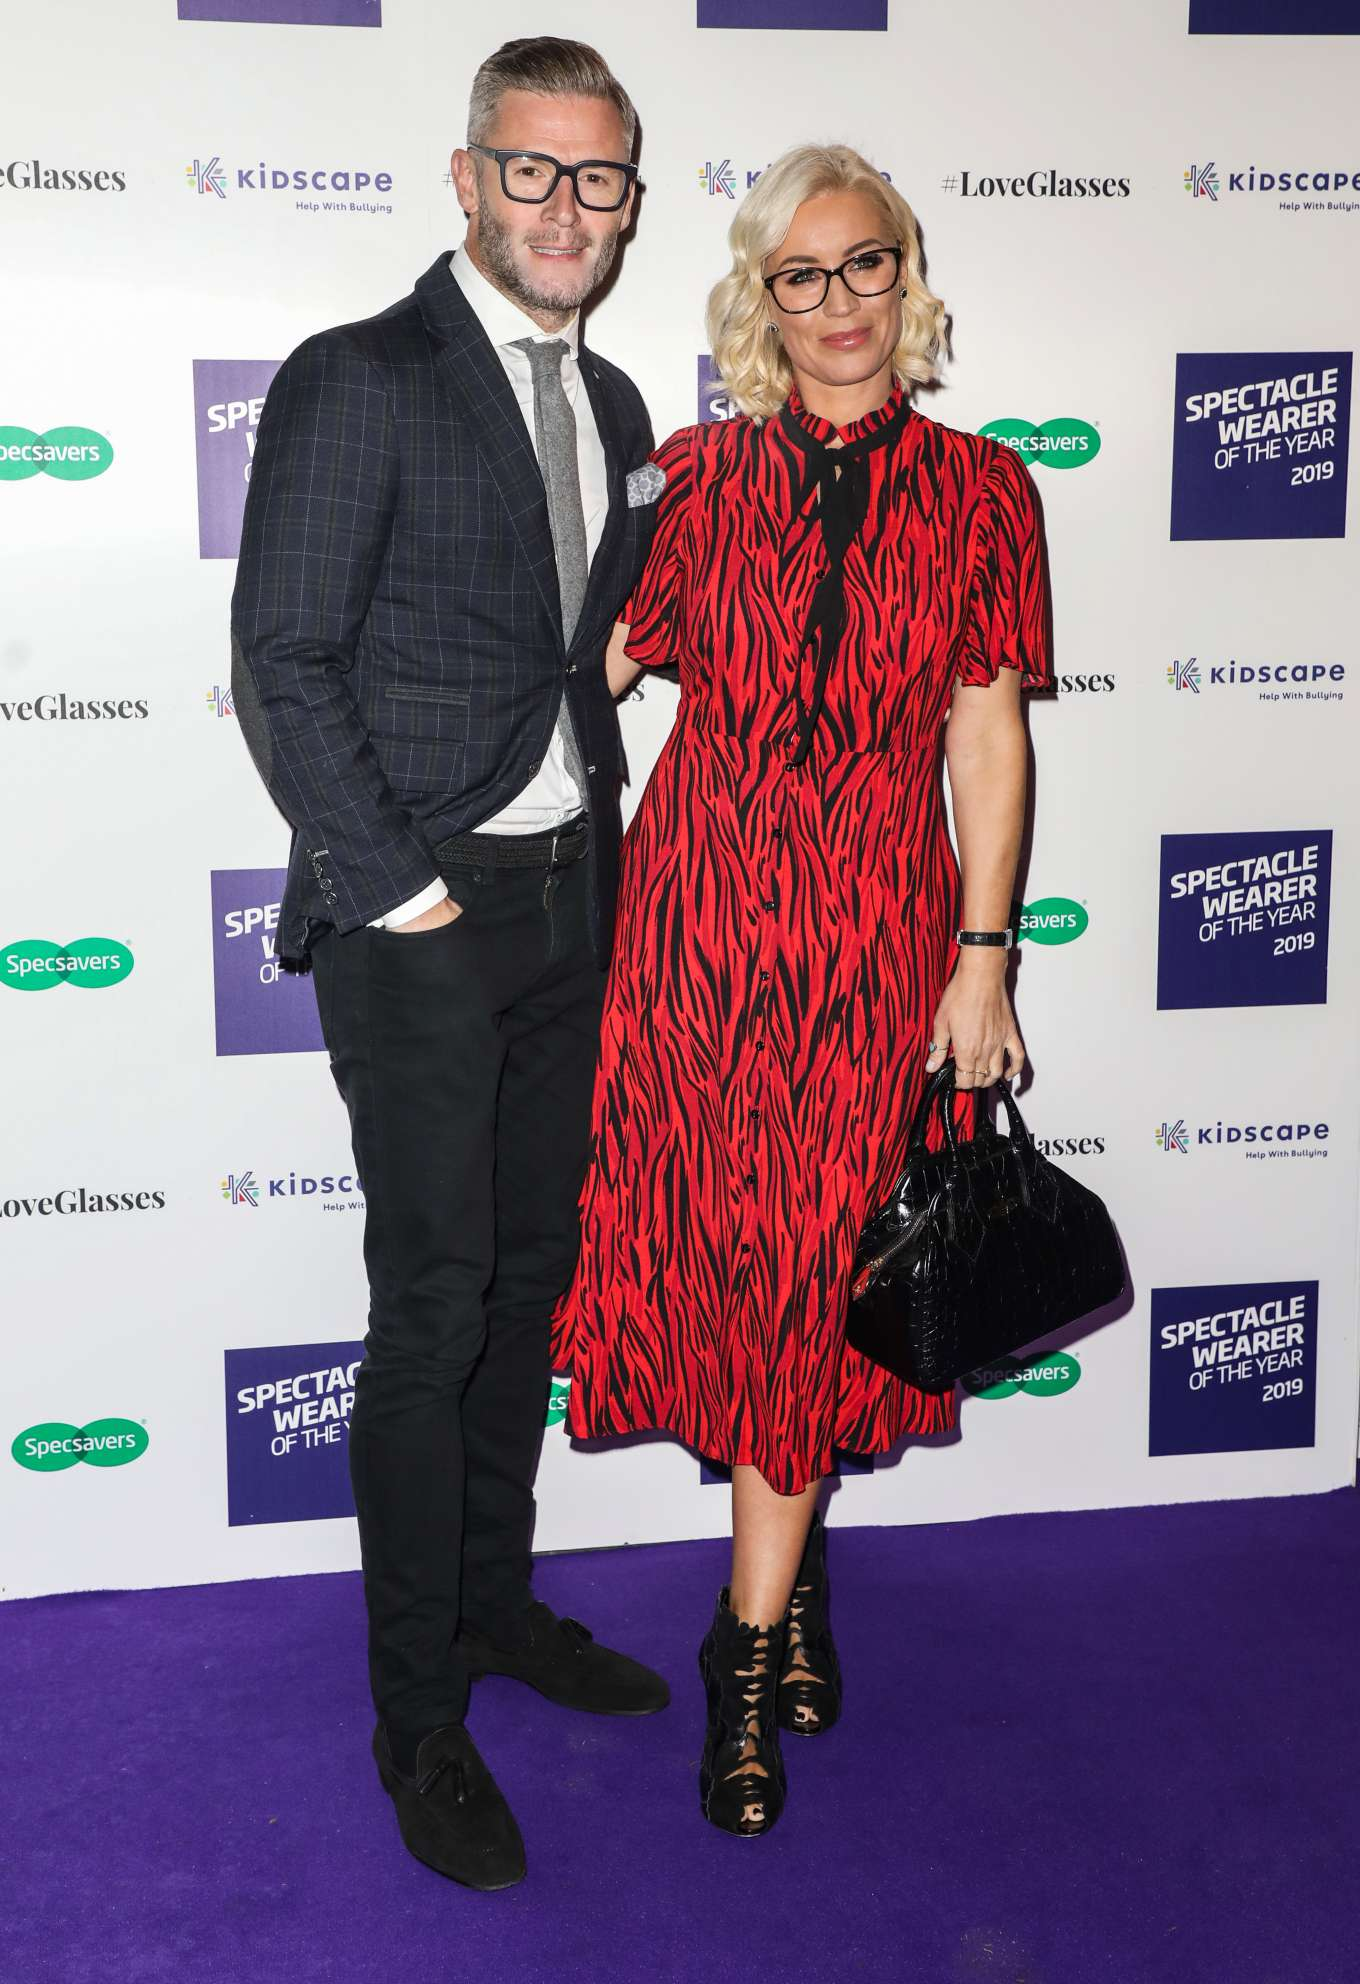 Denise Van Outen 2019 : Denise Van Outen – Specsavers Spectacle Wearer of the Year Awards 2019-06